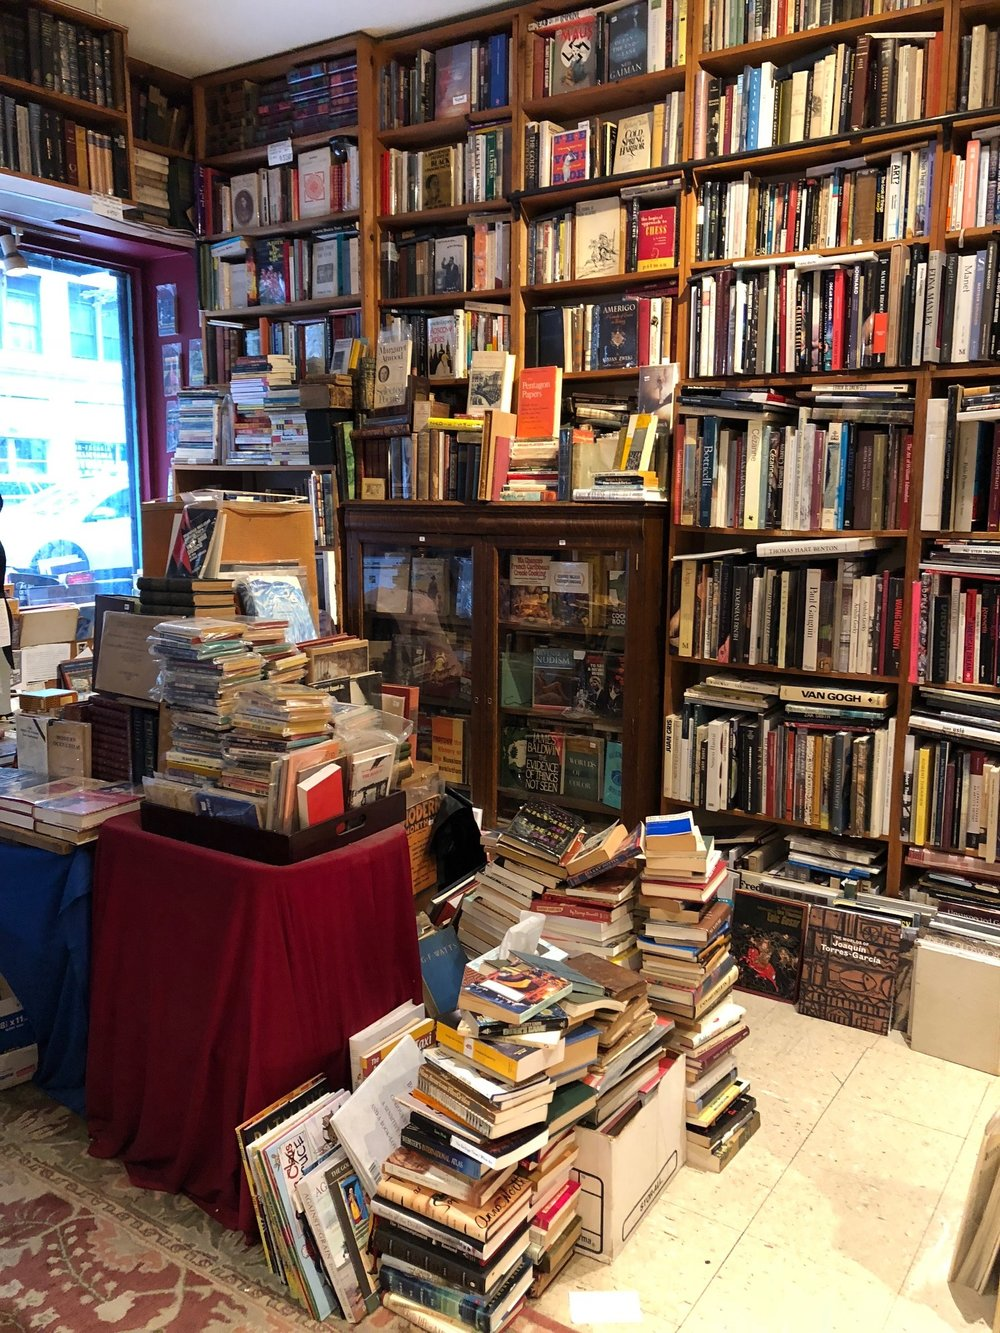 Alabaster Bookshop. The last bookshop remaining on what was once Book Row on 4th Ave between Astor Place and Union Square. Book Row used to house 48 different bookstores!